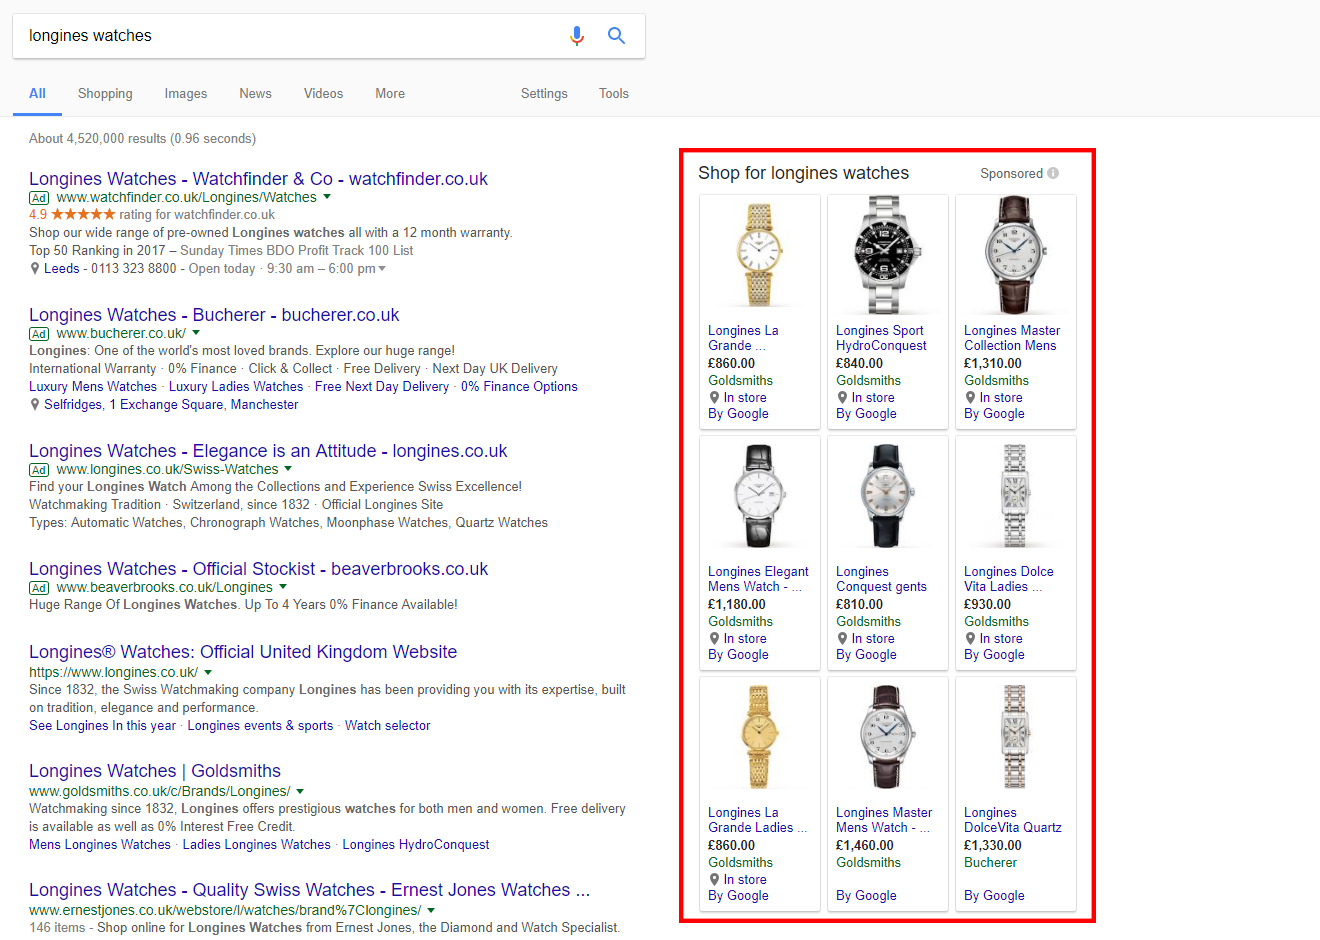 how to show products on google shopping